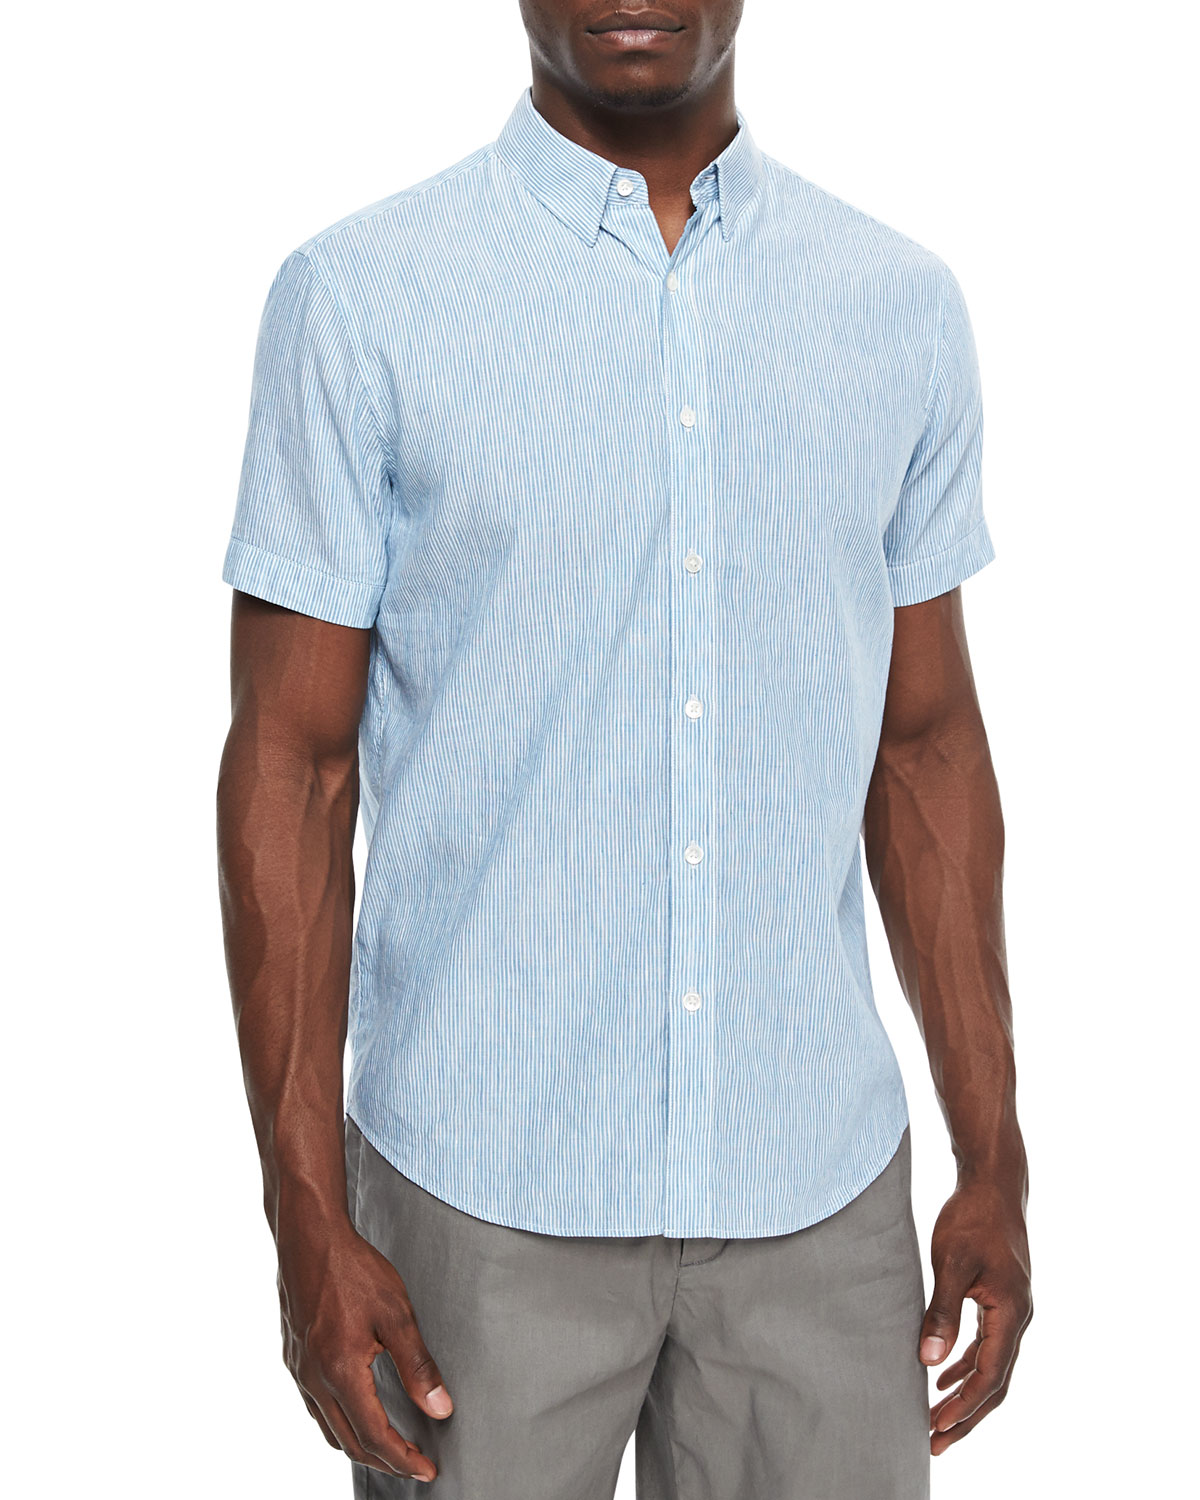 Mini-Stripe Short-Sleeve Linen-Blend Shirt, Light Blue